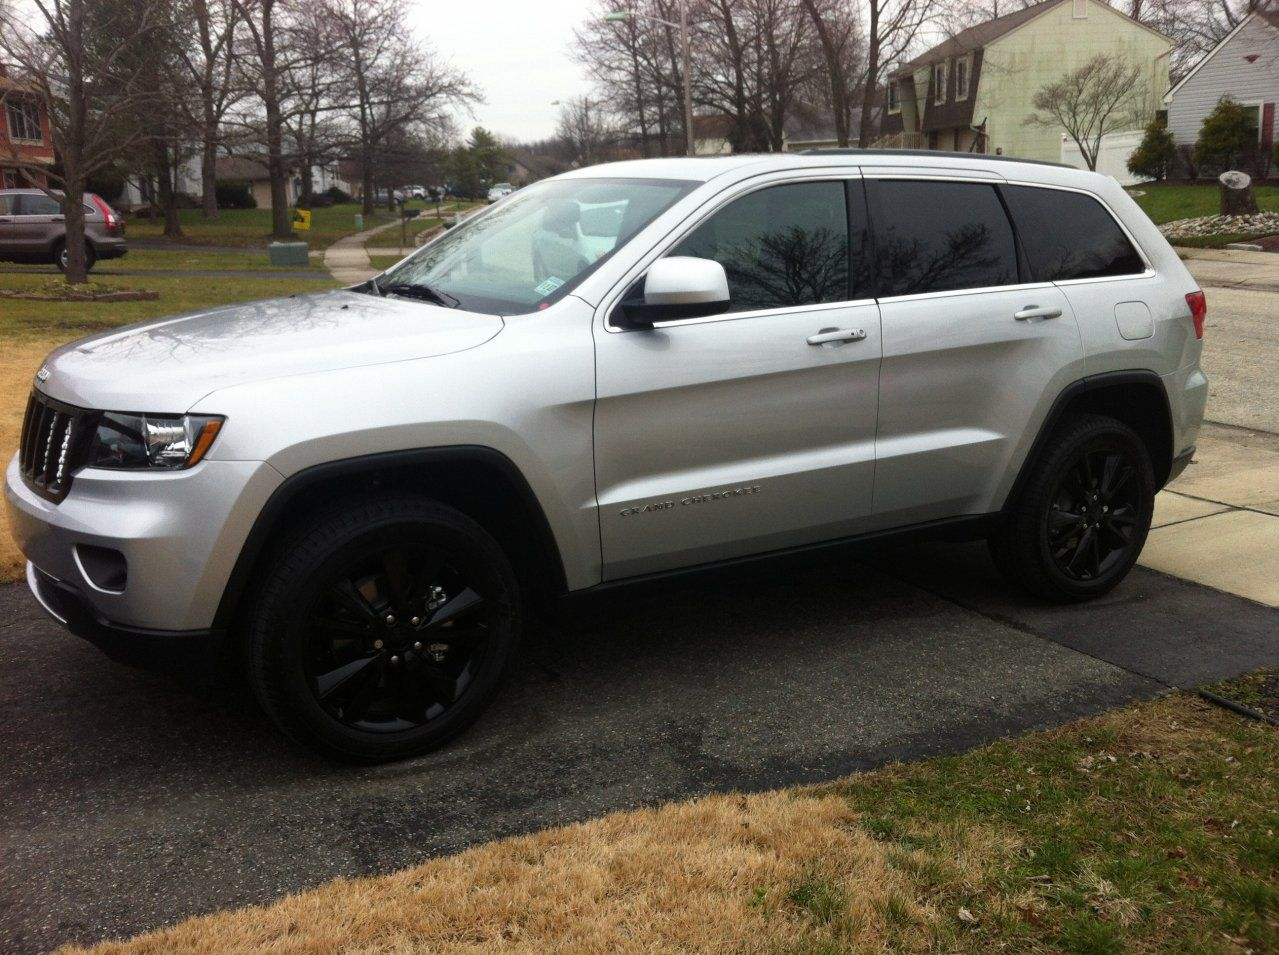 Wk2 Picture Thread Page 57 Jeepforum Com Jeep Gear Lux Cars Jeep Grand Cherokee